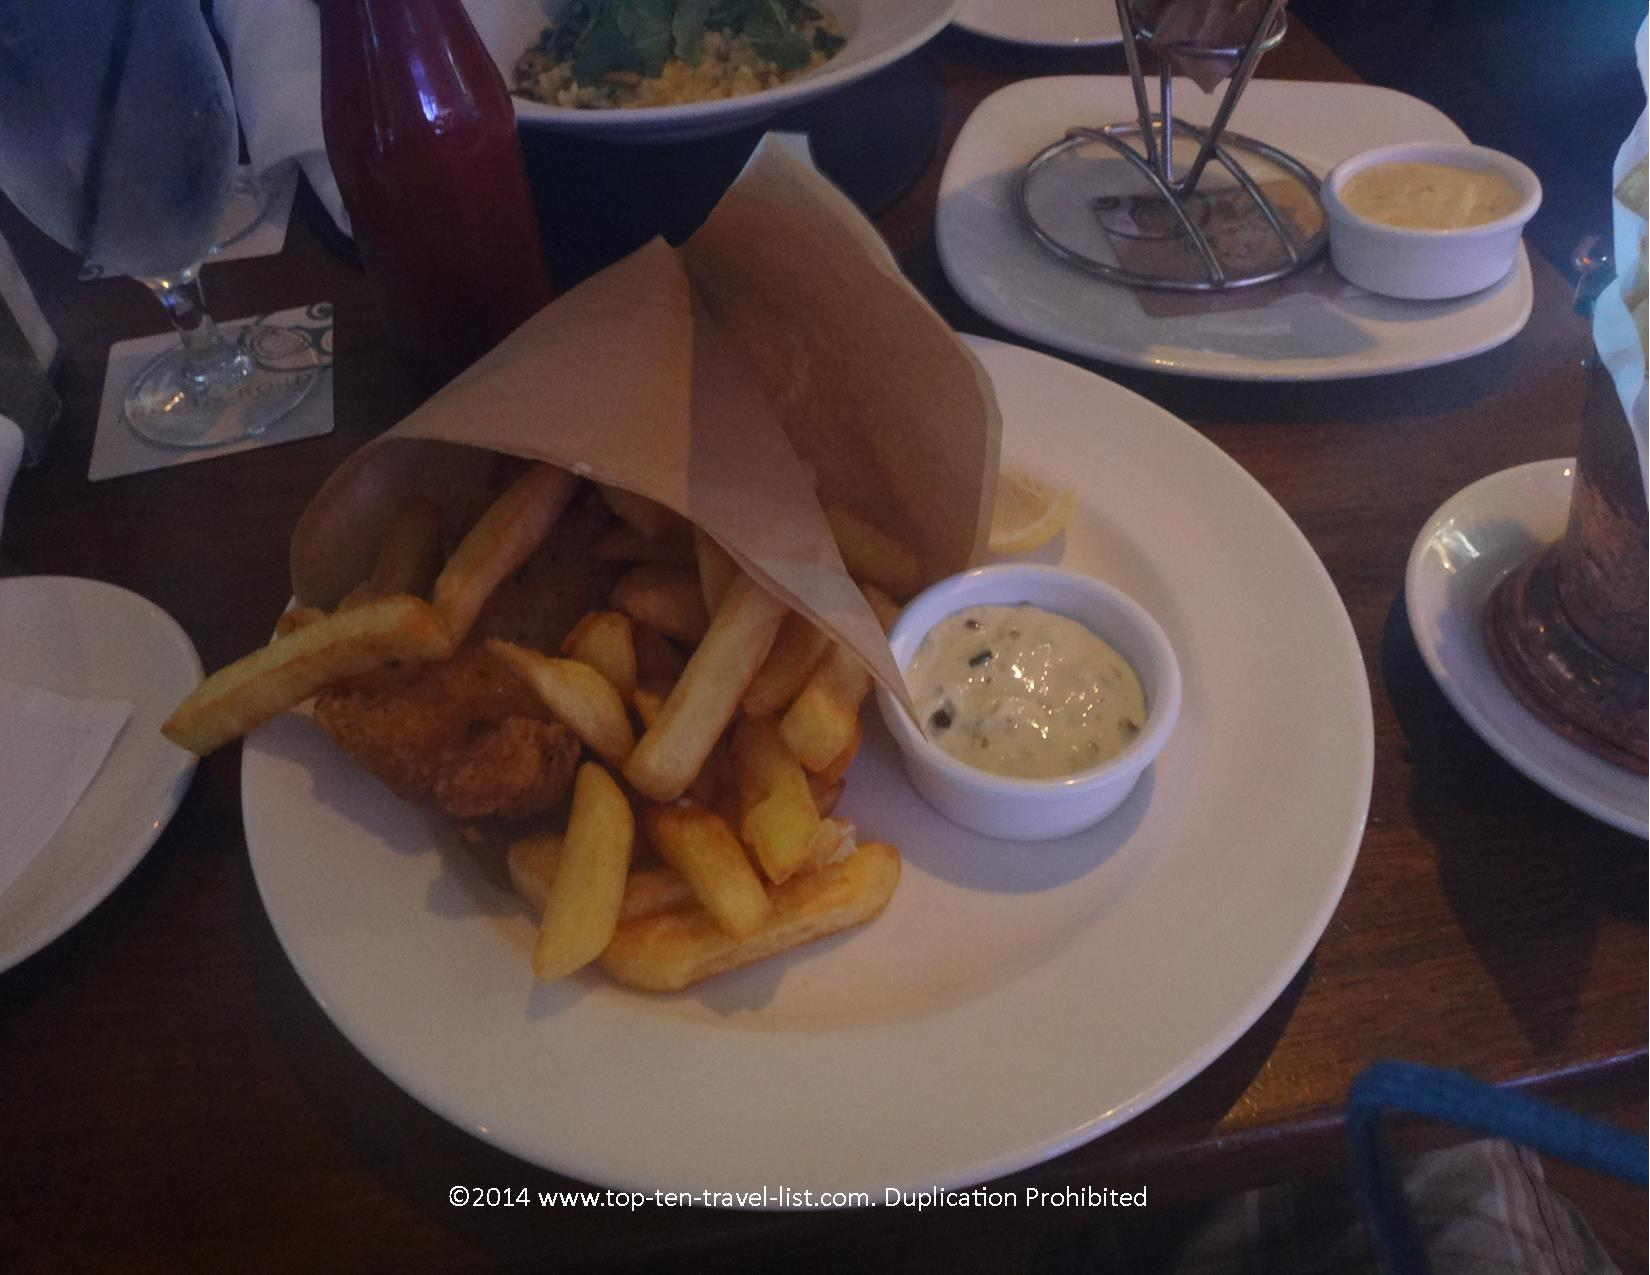 Gluten free fish and chips at Ragland Road in Downtown Disney Orlando, Florida